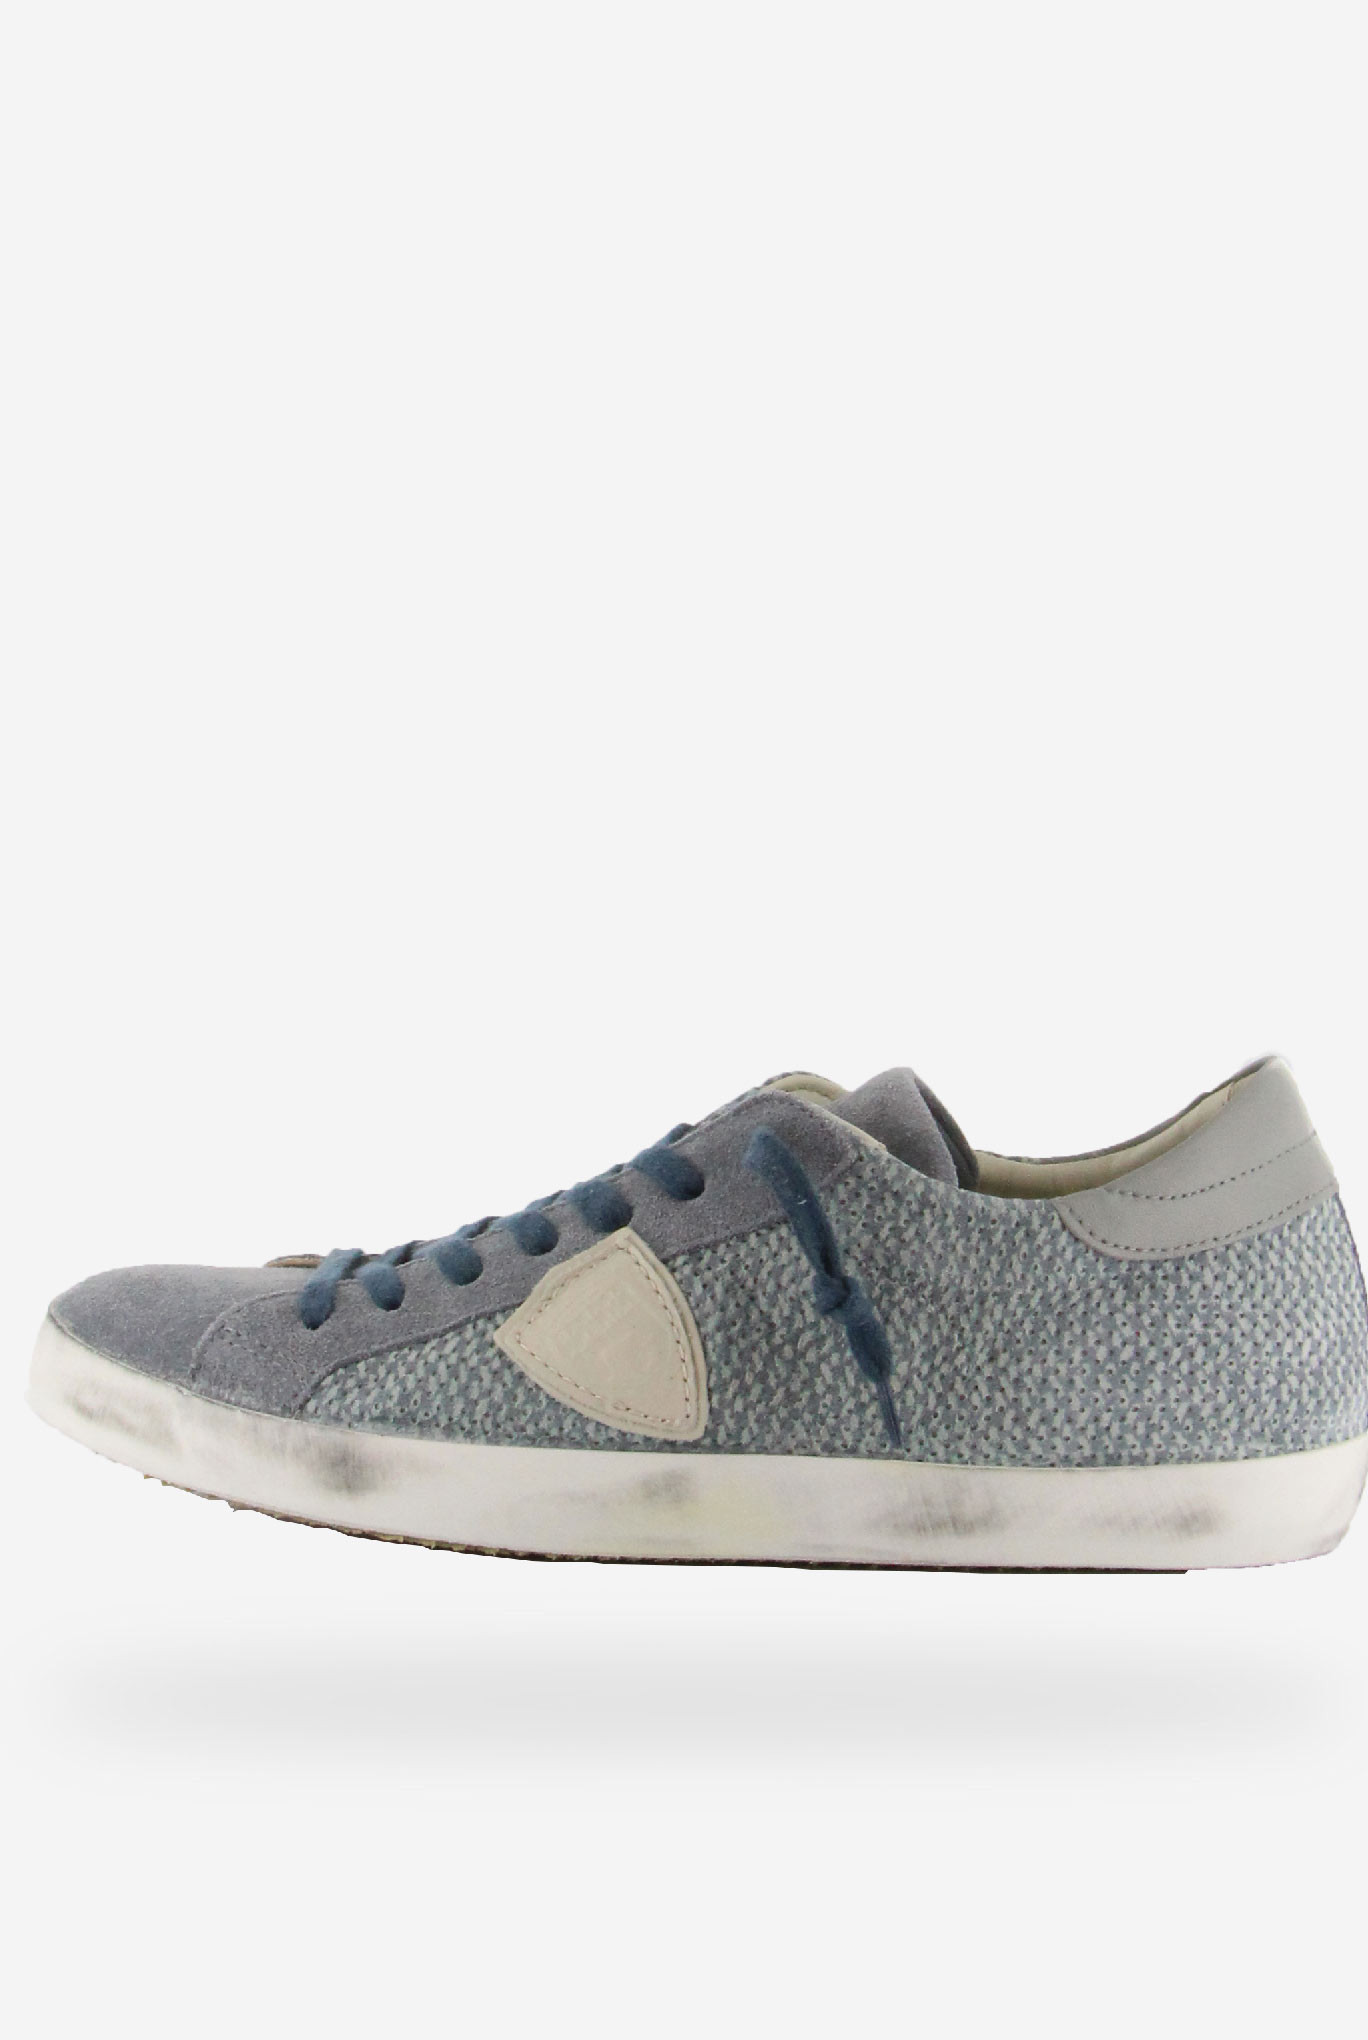 BASKETS PHILIPPE MODEL CLASSIC LOW UOMO PERFORE CIEL BUTTER CLLU-PS27